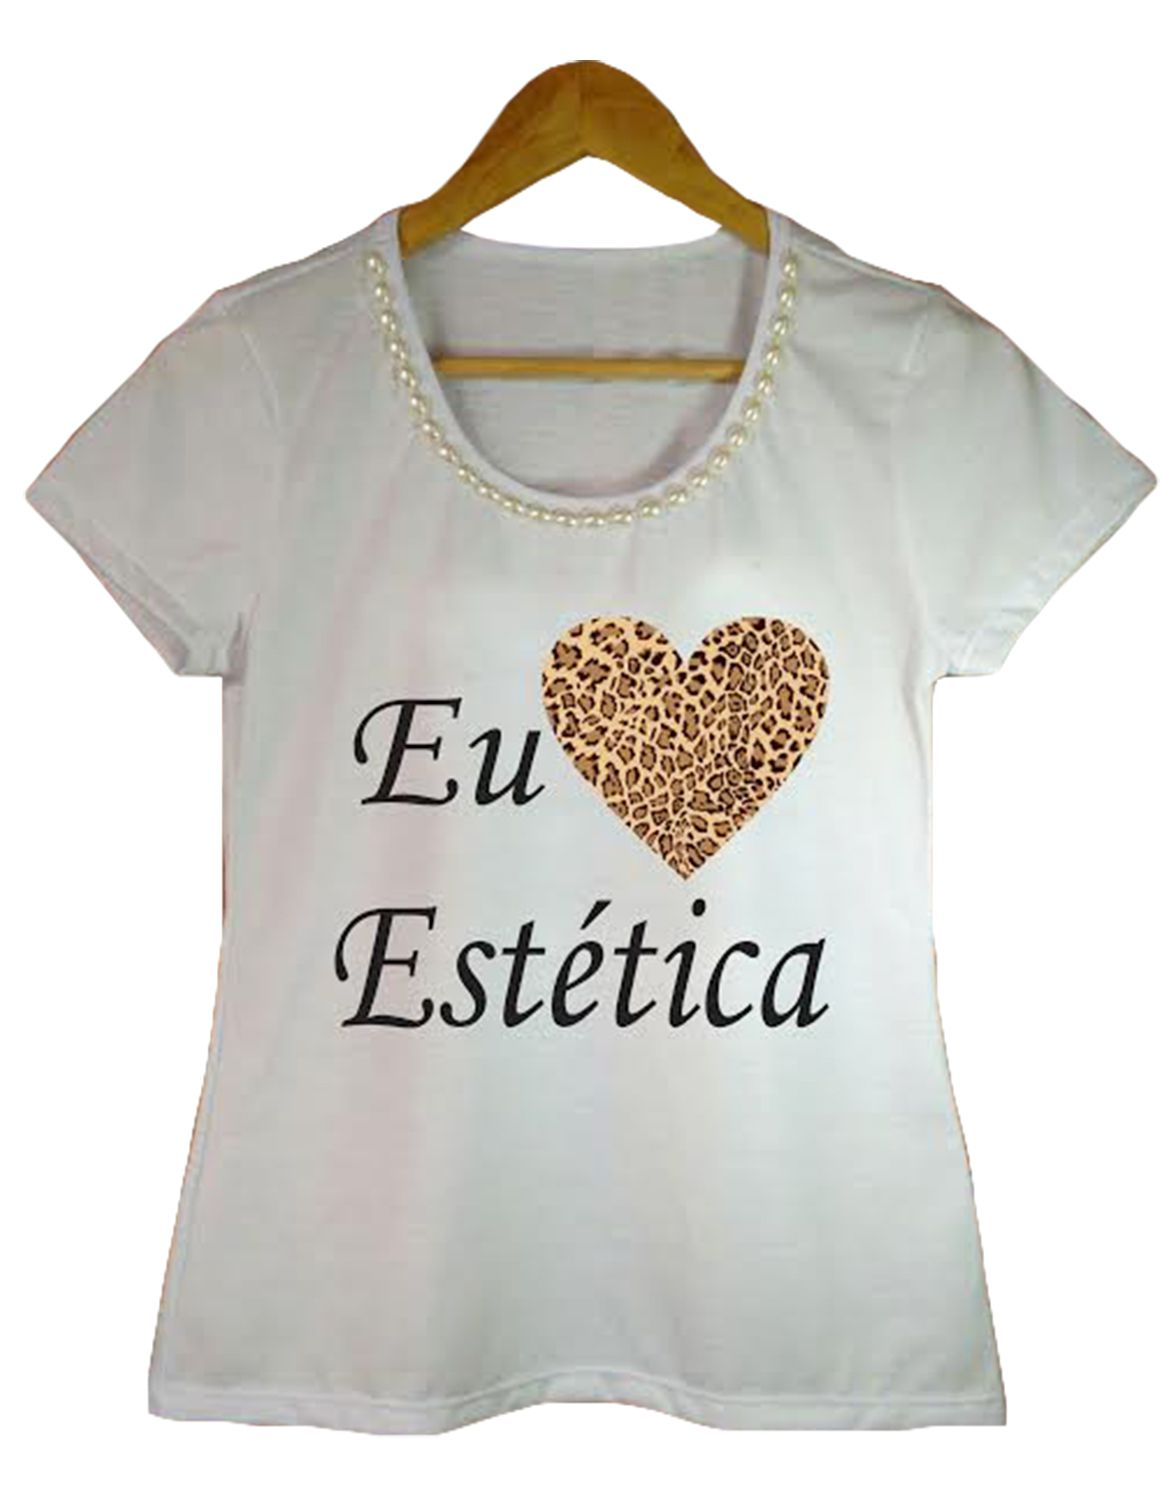 T-shirt adulta feminina bordada esteticista